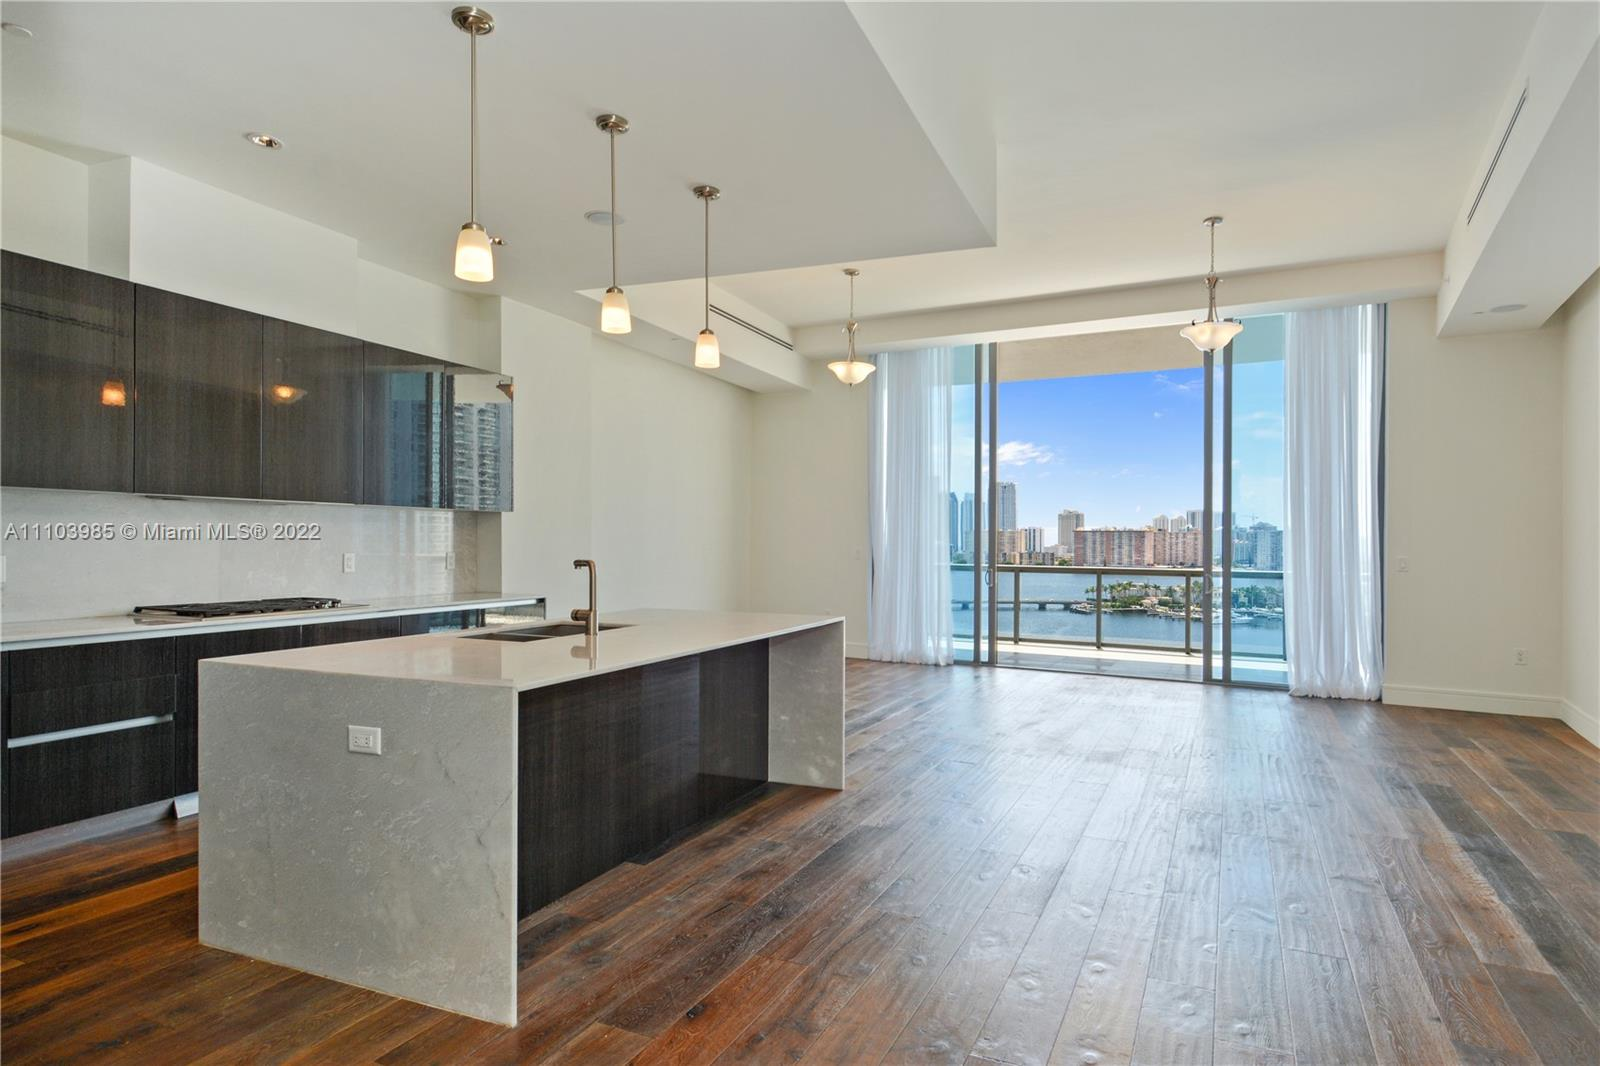 3300 NE 188th St #UPH13 For Sale A11103985, FL